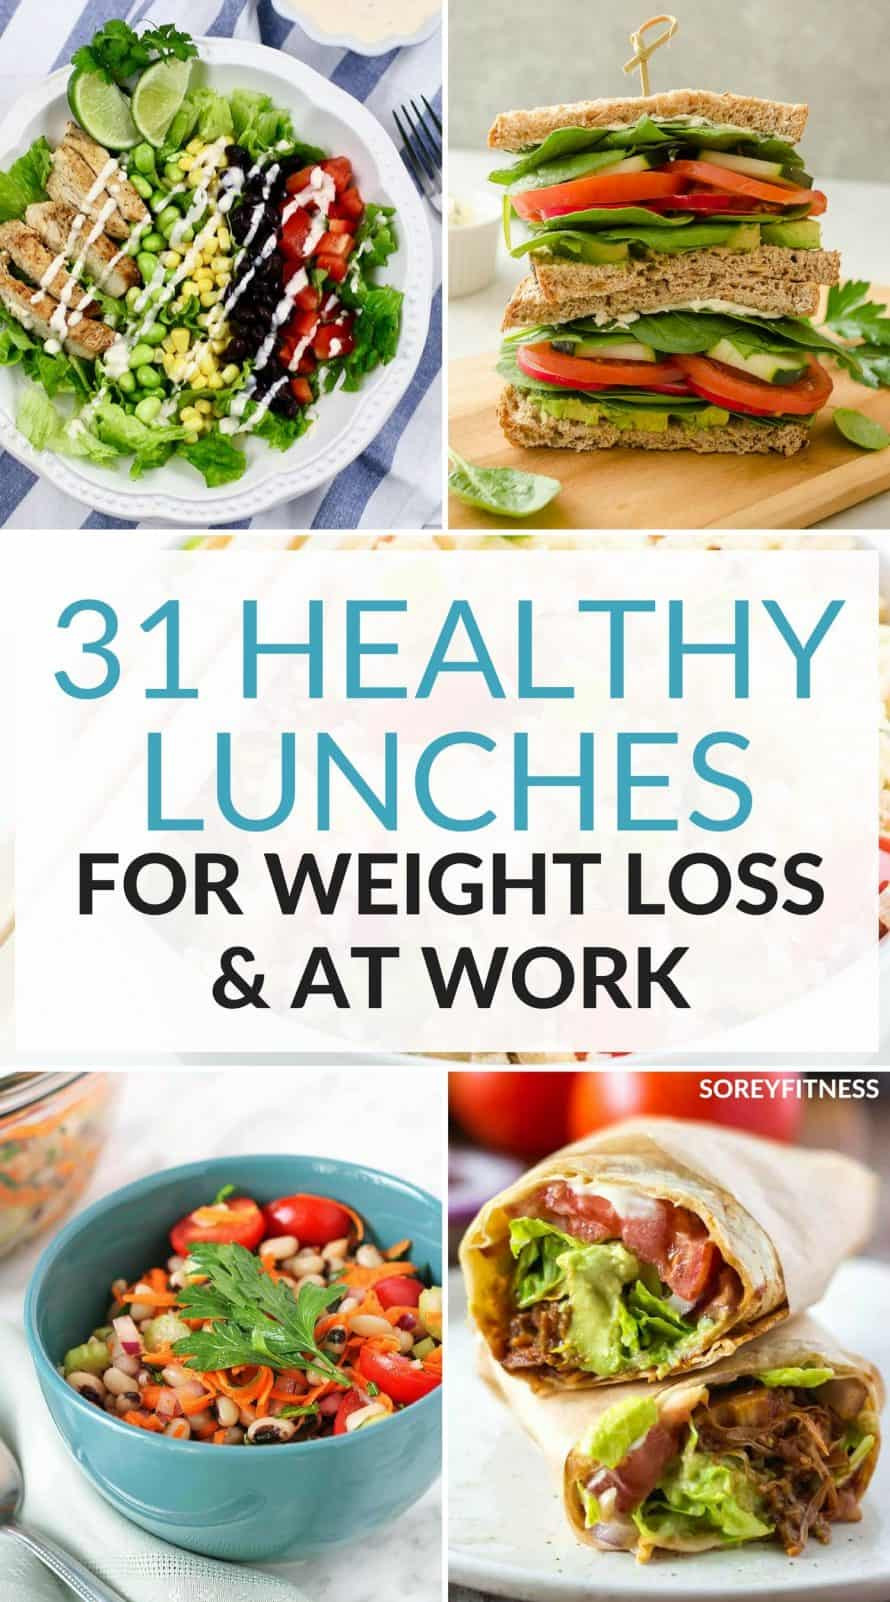 Healthy Lunches To Lose Weight  31 Healthy Lunch Ideas For Weight Loss Easy Meals for